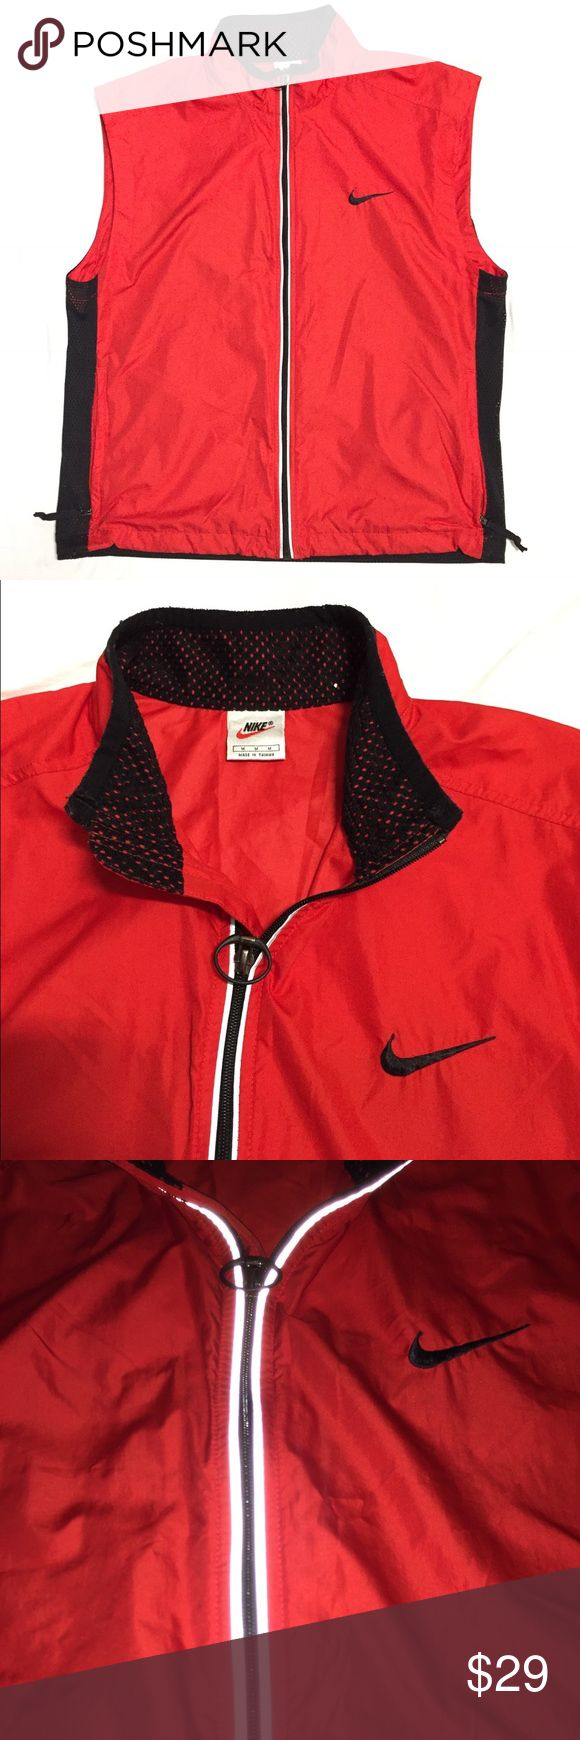 NIKE 3M Cycling Vest Full Zip with pockets 9/10 Condition. No Holes or Stains. Coming from a smoke free home. Nike Other